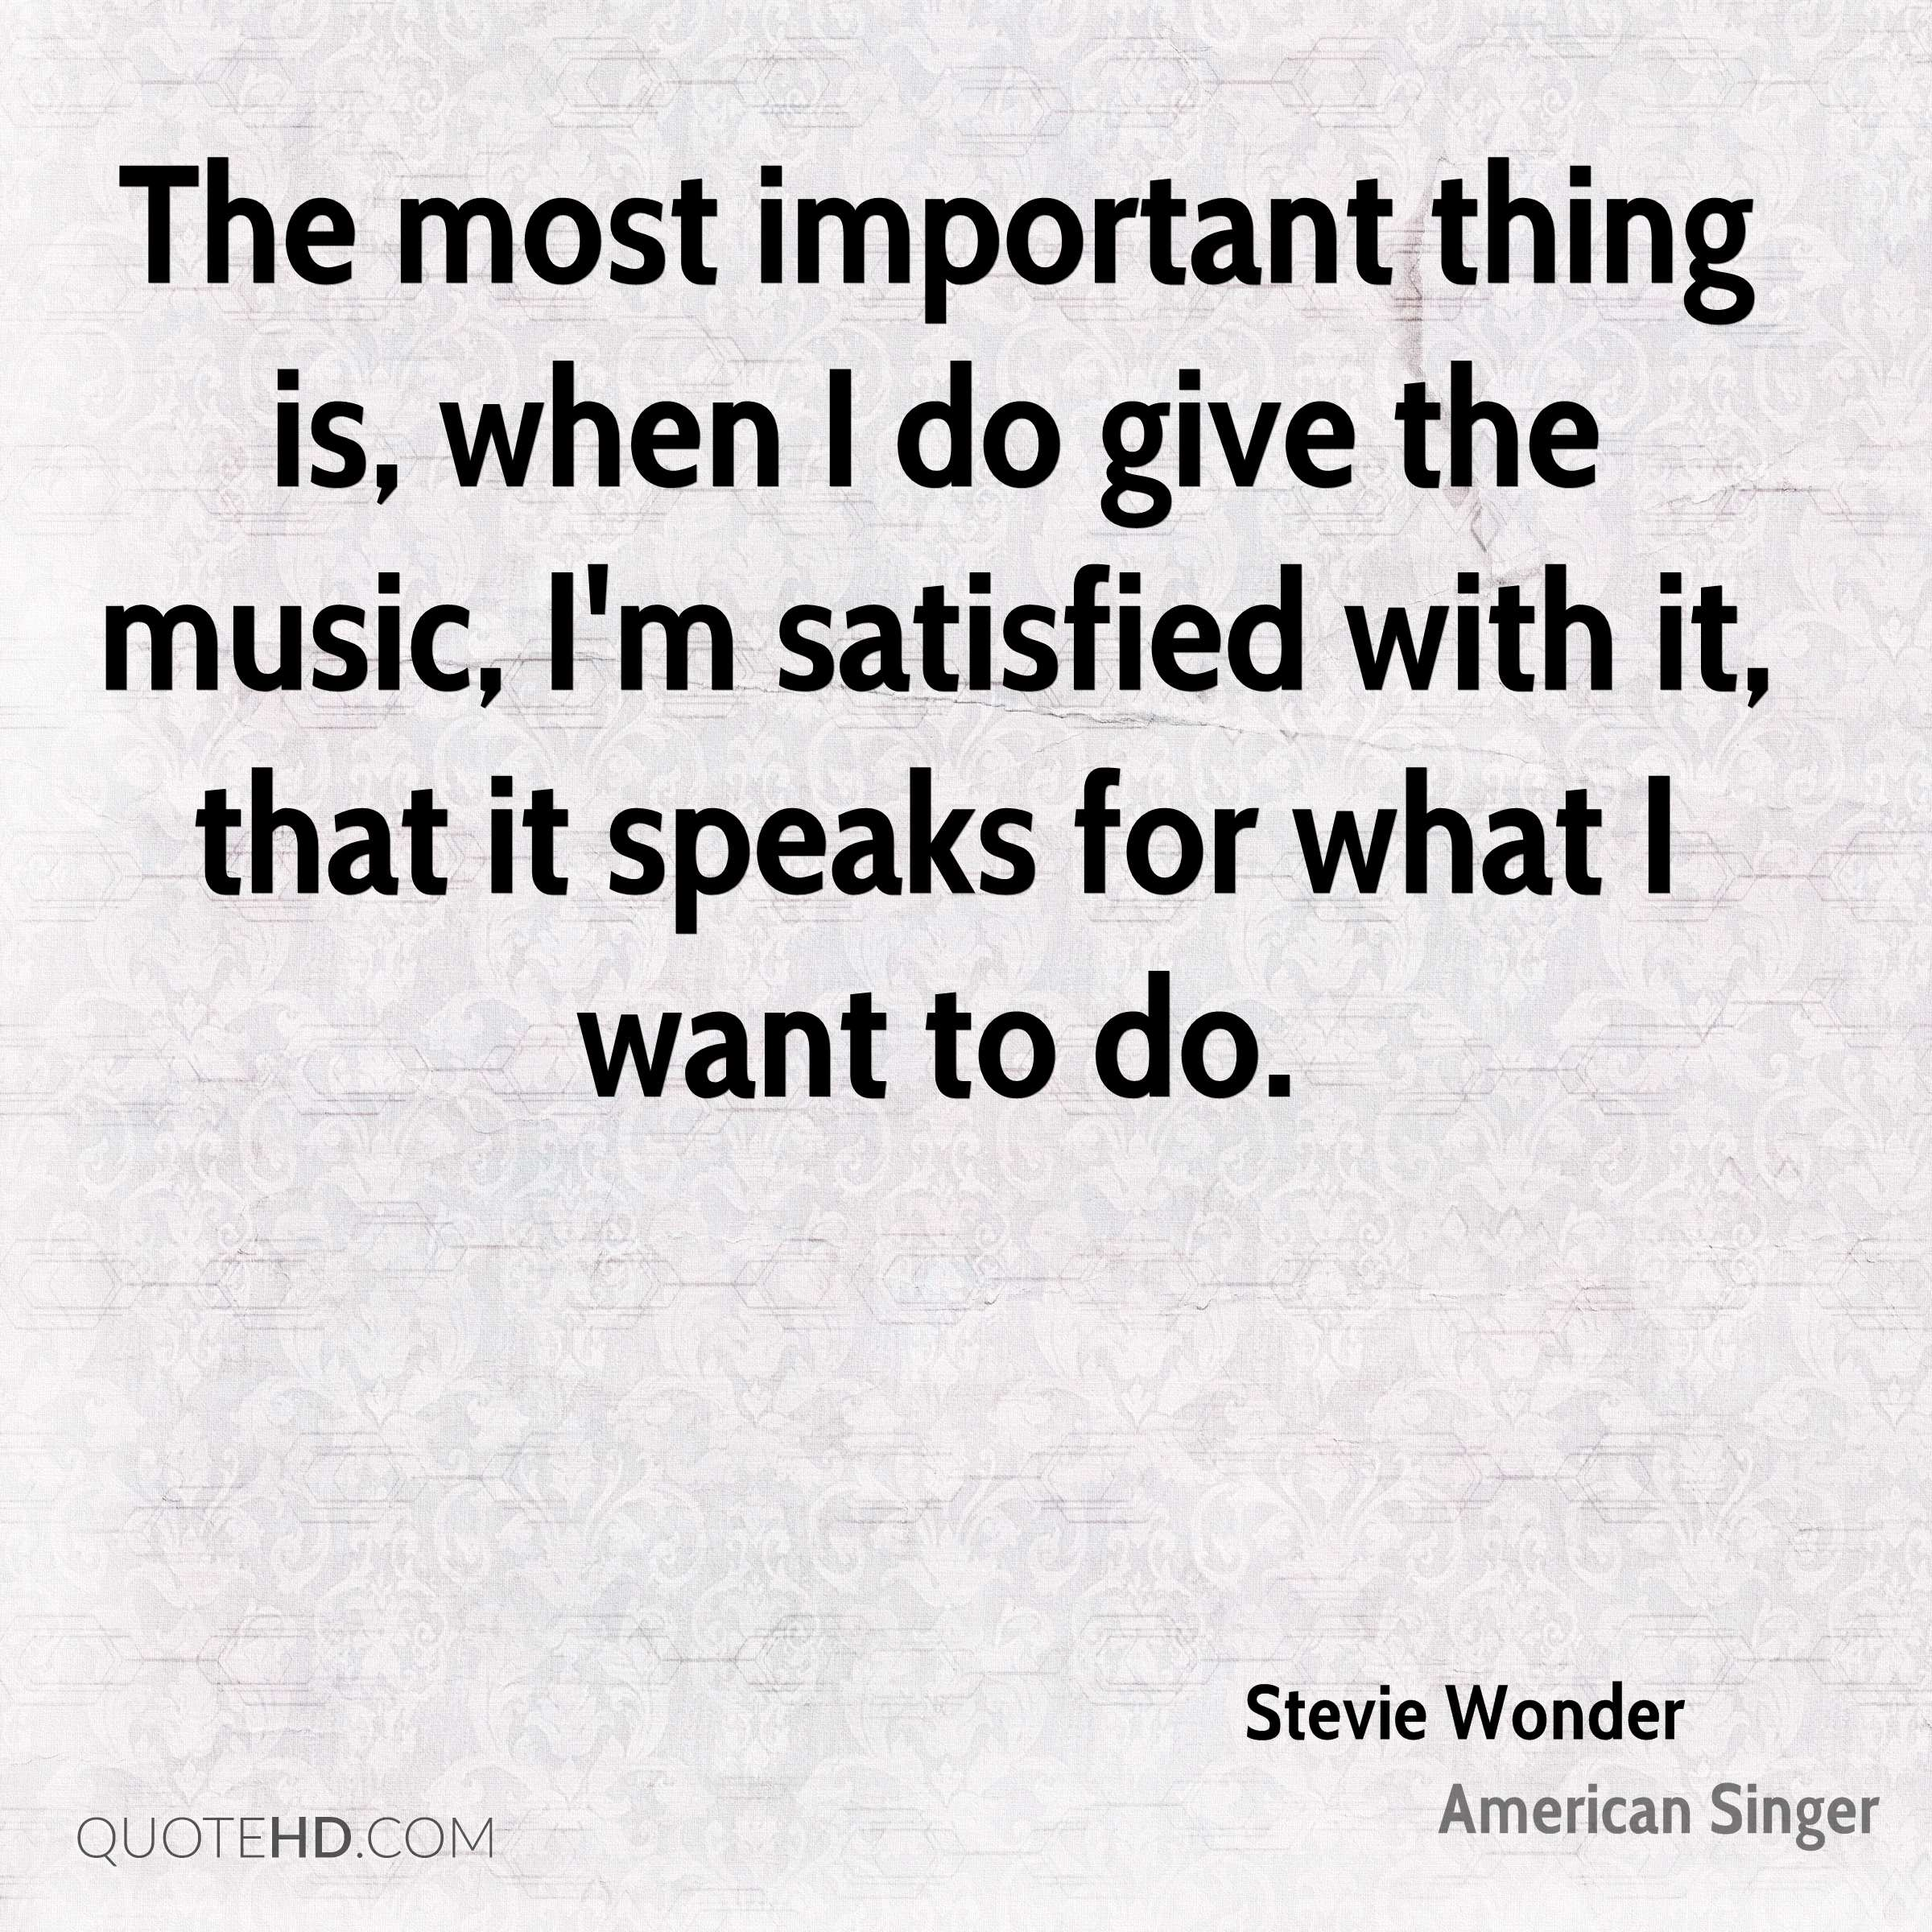 The most important thing is, when I do give the music, I'm satisfied with it, that it speaks for what I want to do.